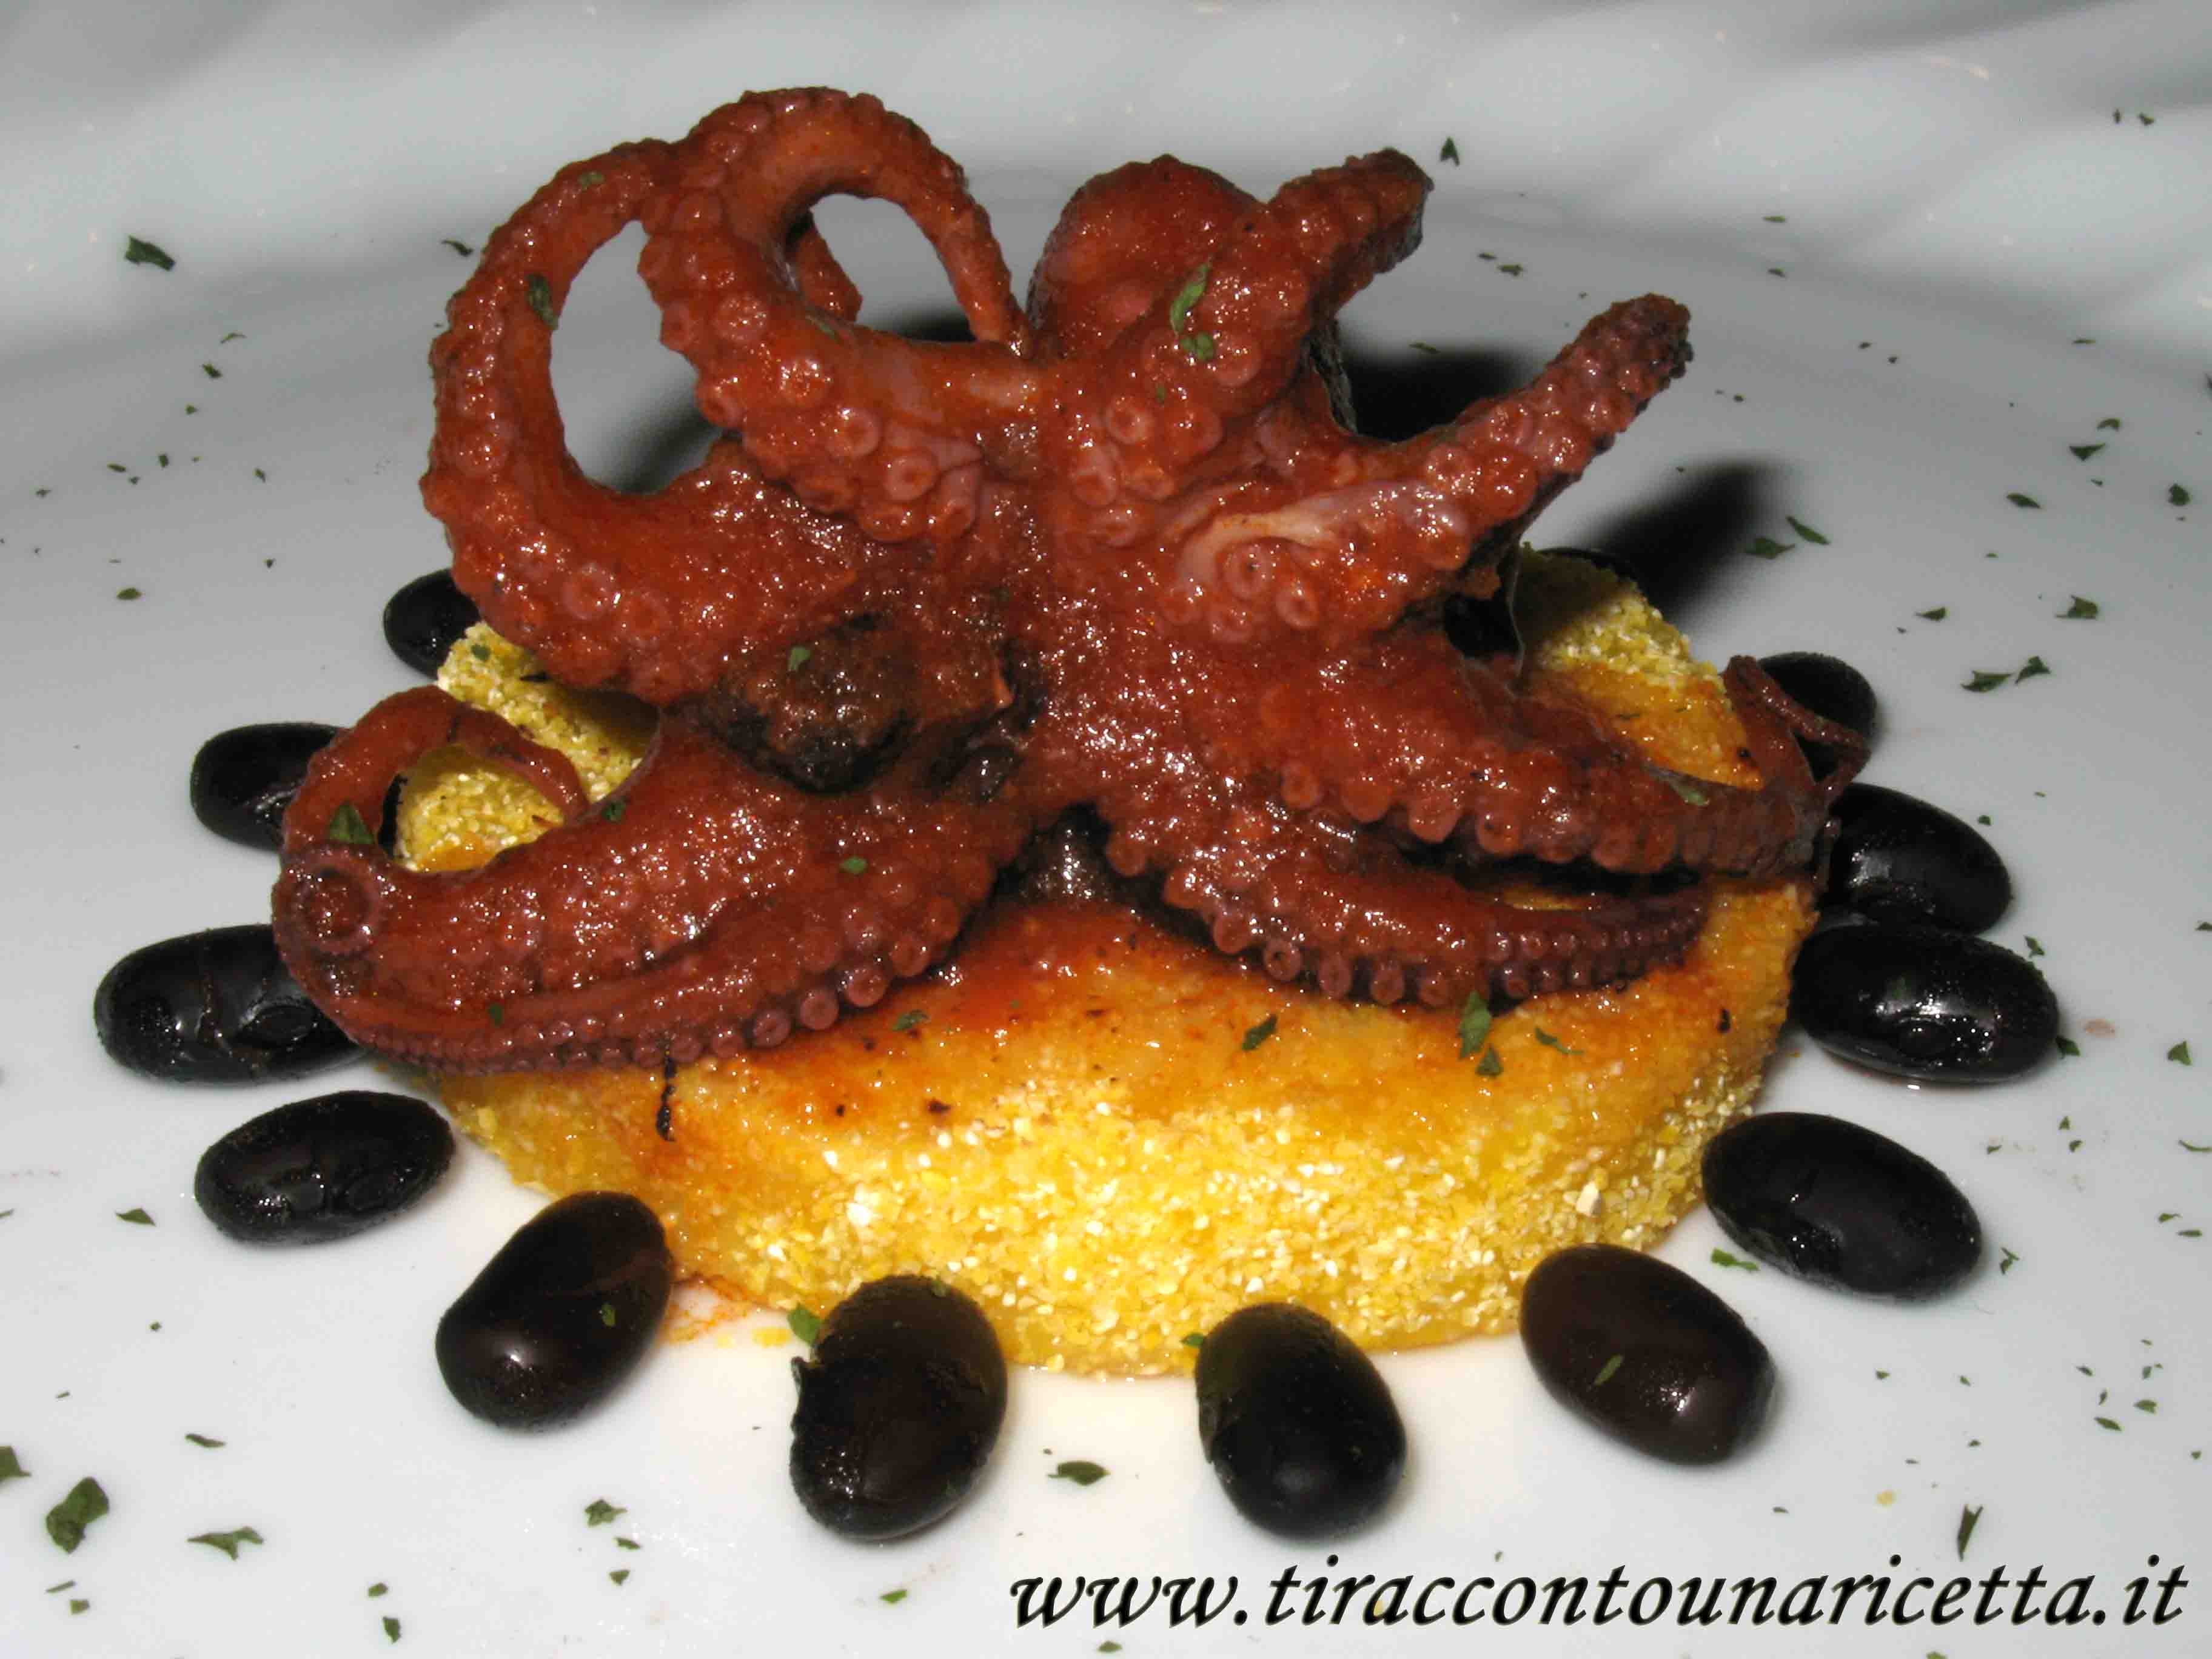 Medallions of  polenta with baby octopus and black beans